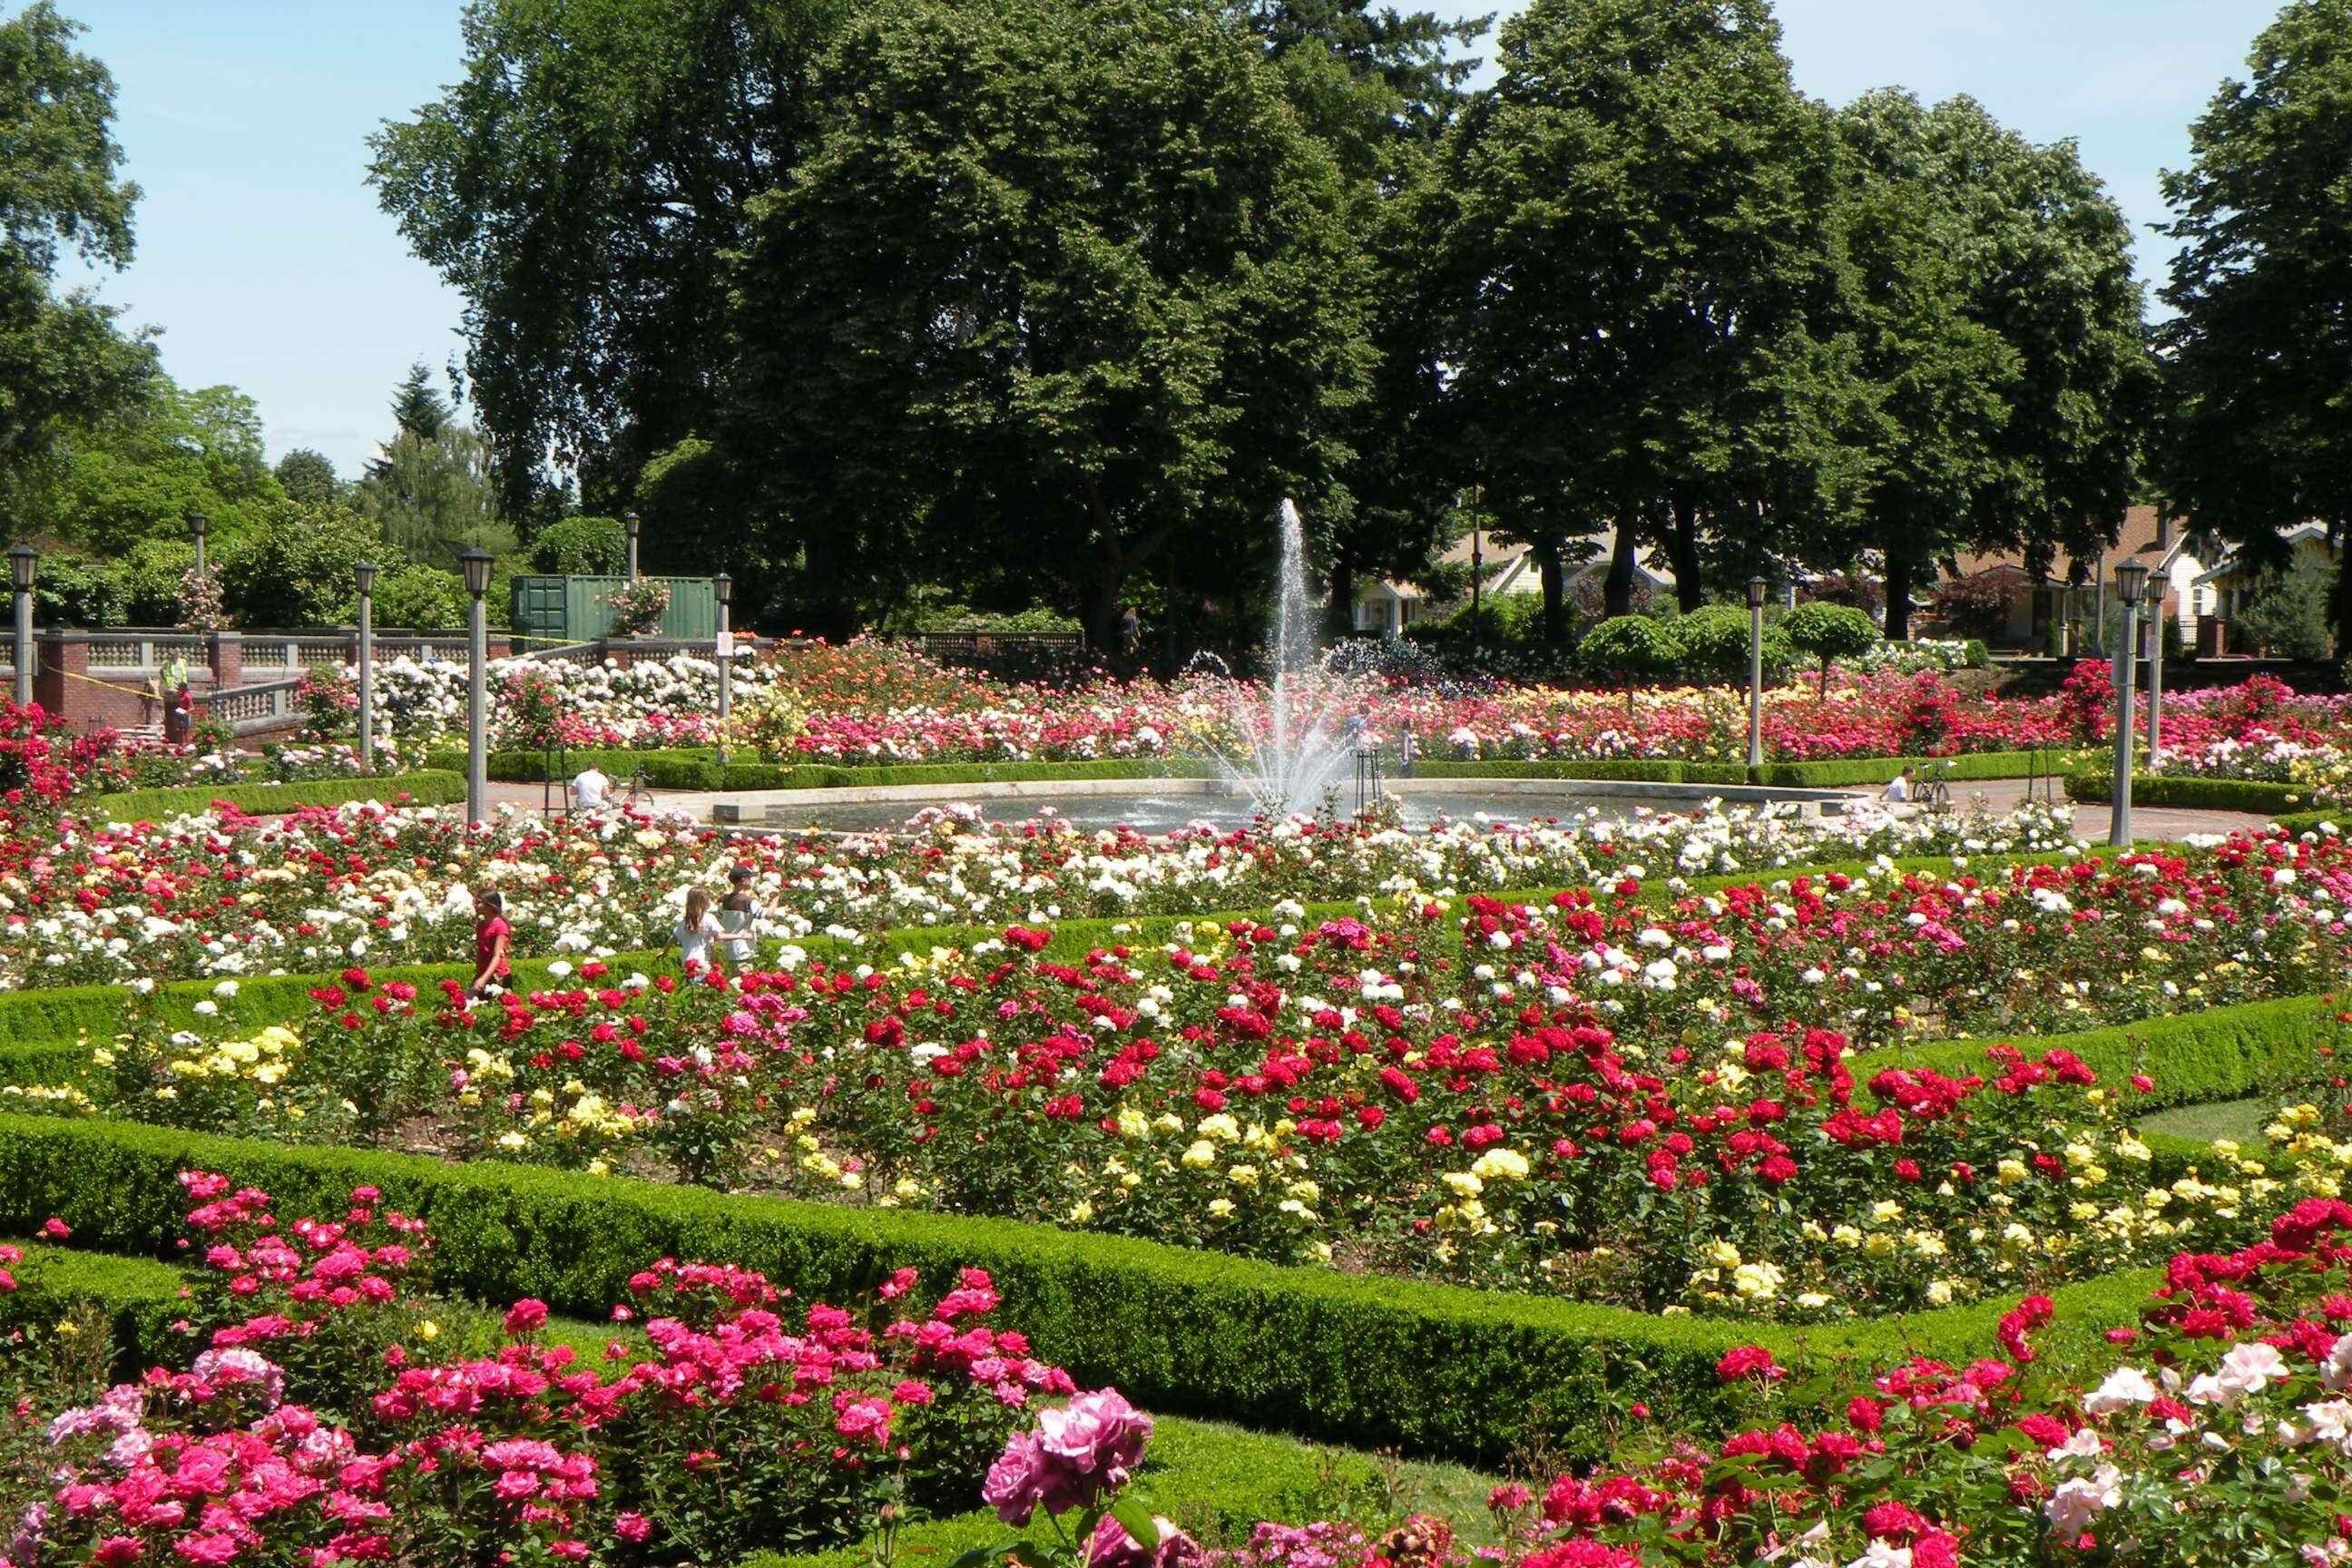 Image of Portland Rose Garden